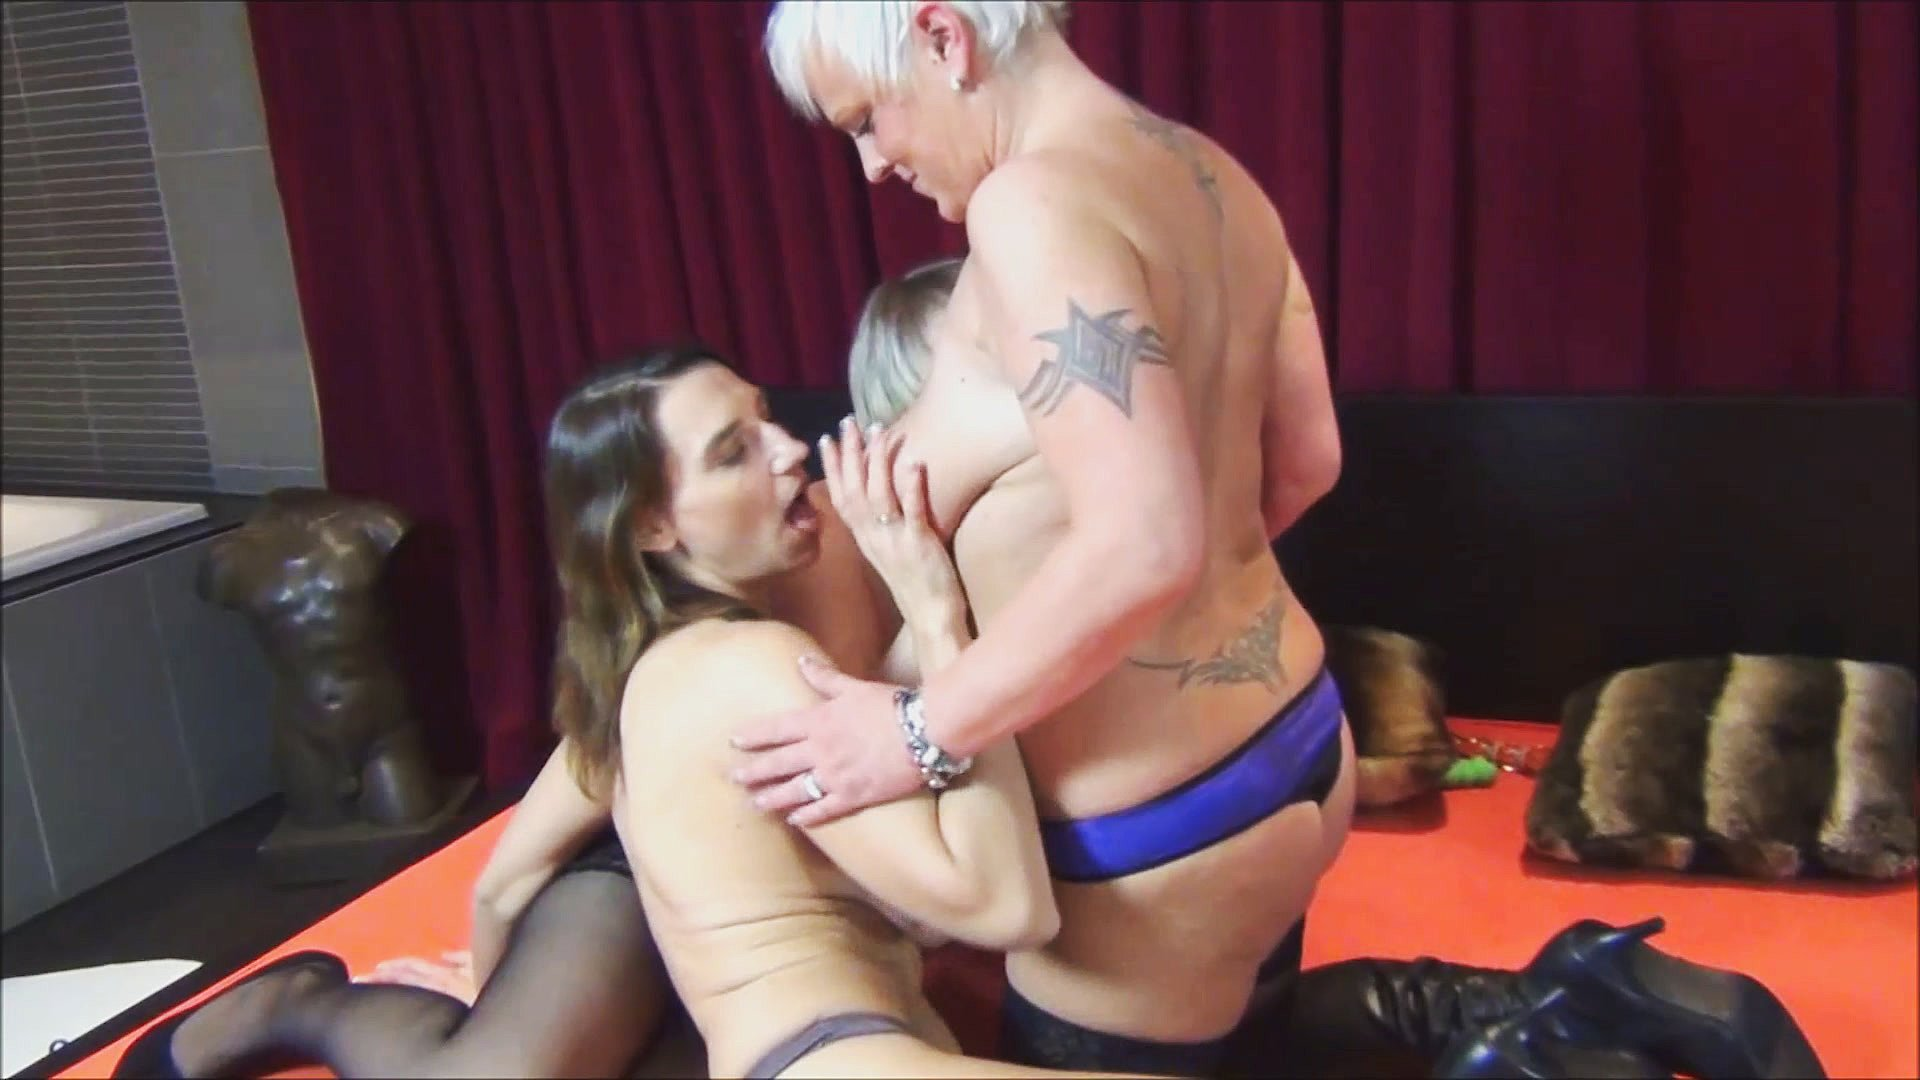 Bigtitts85G